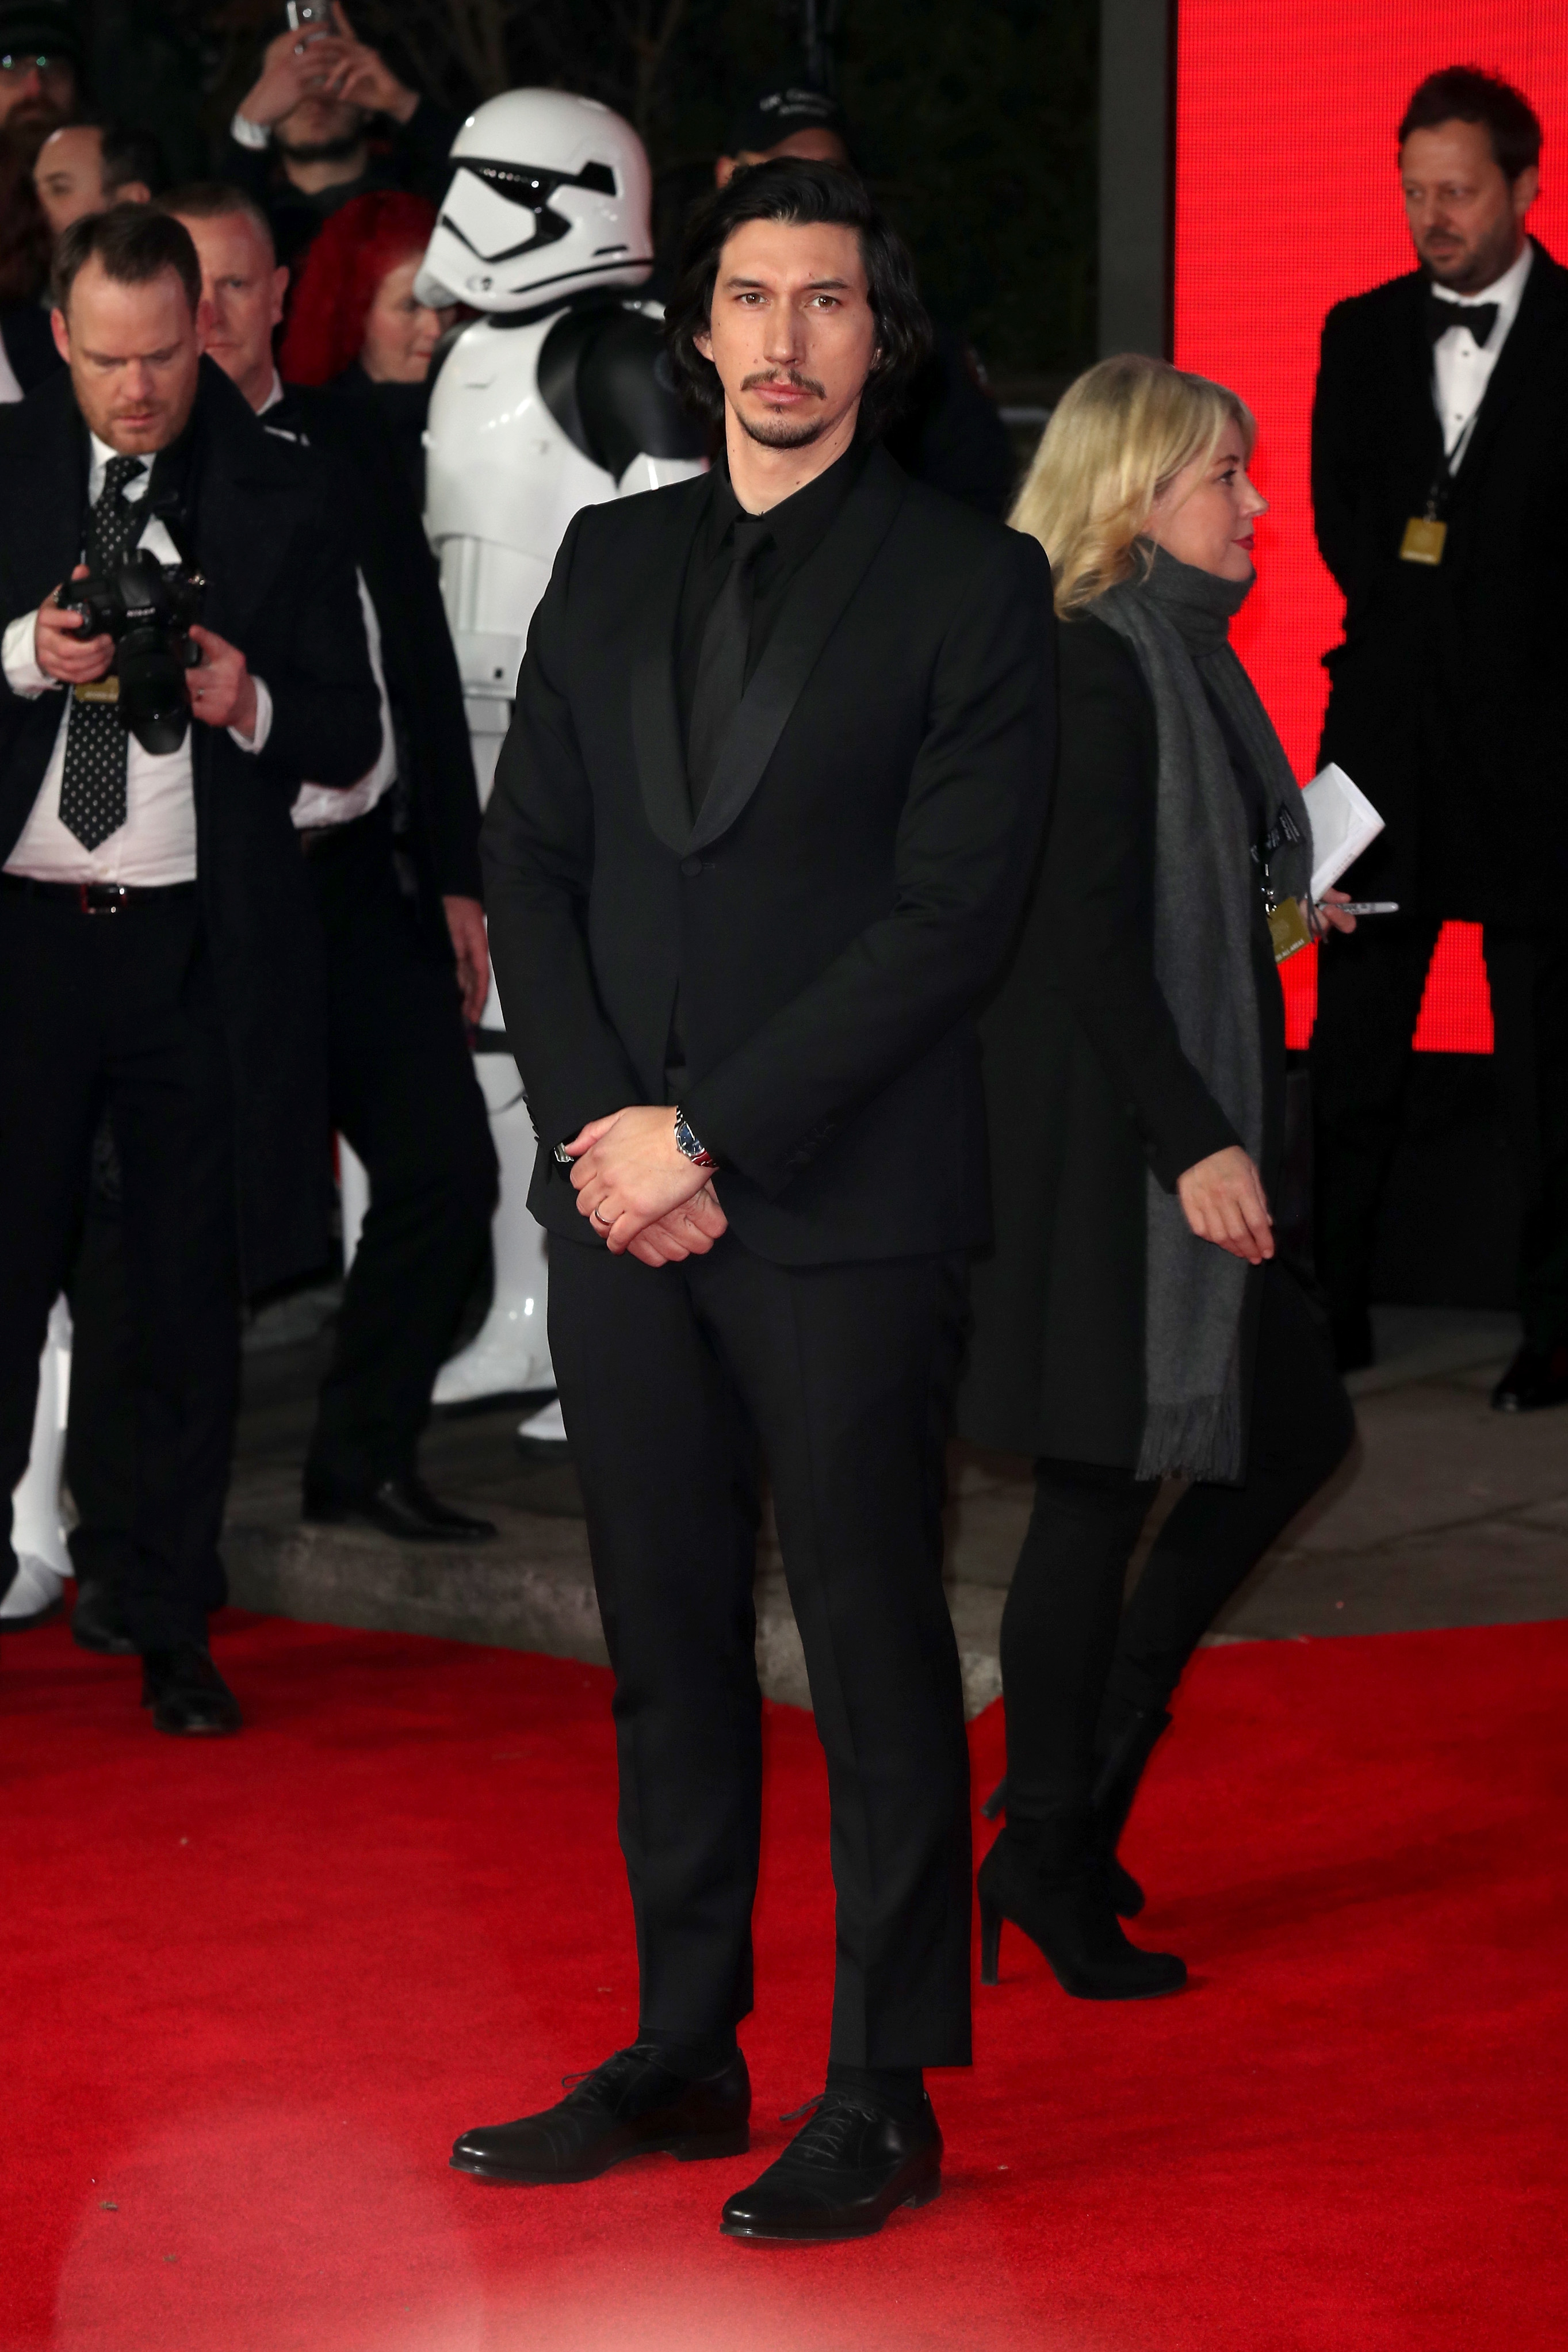 LONDON, ENGLAND - DECEMBER 12: Actor Adam Driver attends the European Premiere of 'Star Wars: The Last Jedi' at Royal Albert Hall on December 12, 2017 in London, England. (Photo by